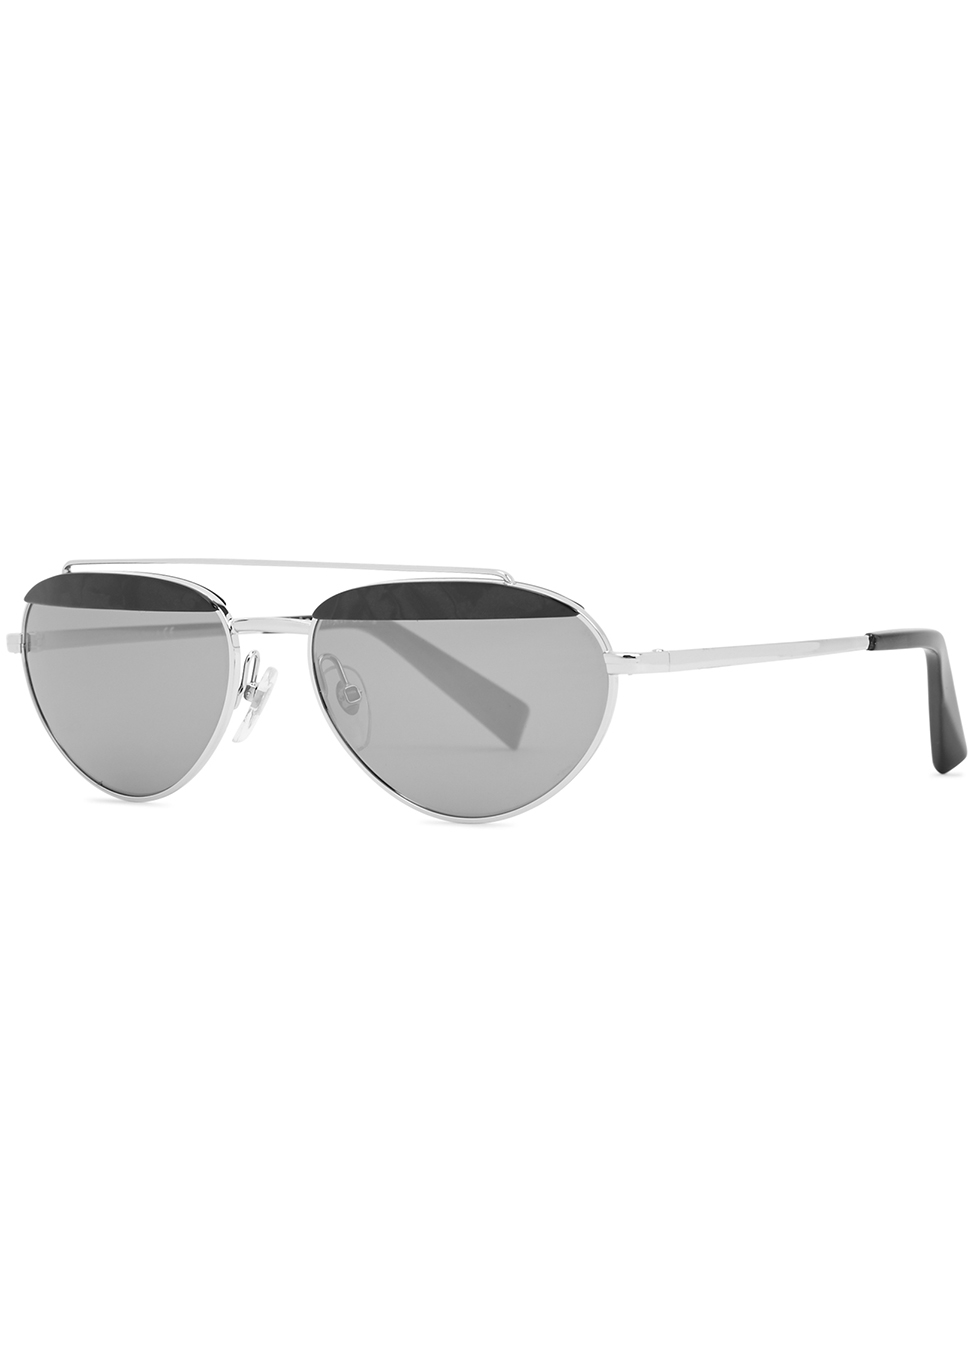 Elicot mirrored oval-frame sunglasses - ALAIN MIKLI